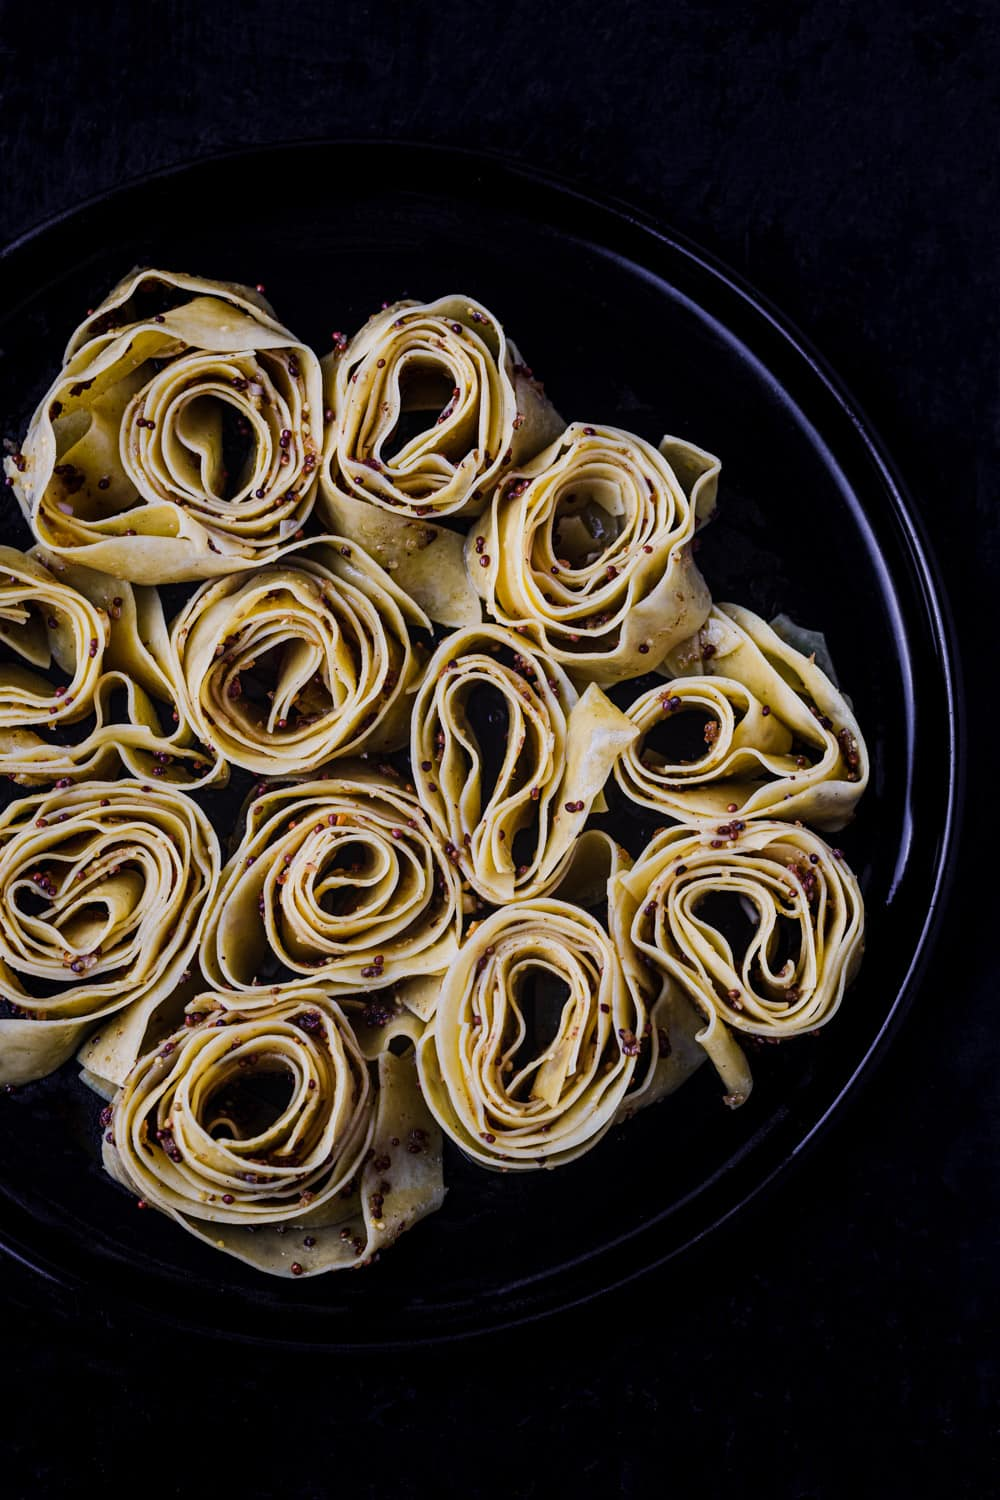 in process shot of the pappardelle on a black plate and a black background, overhead shot